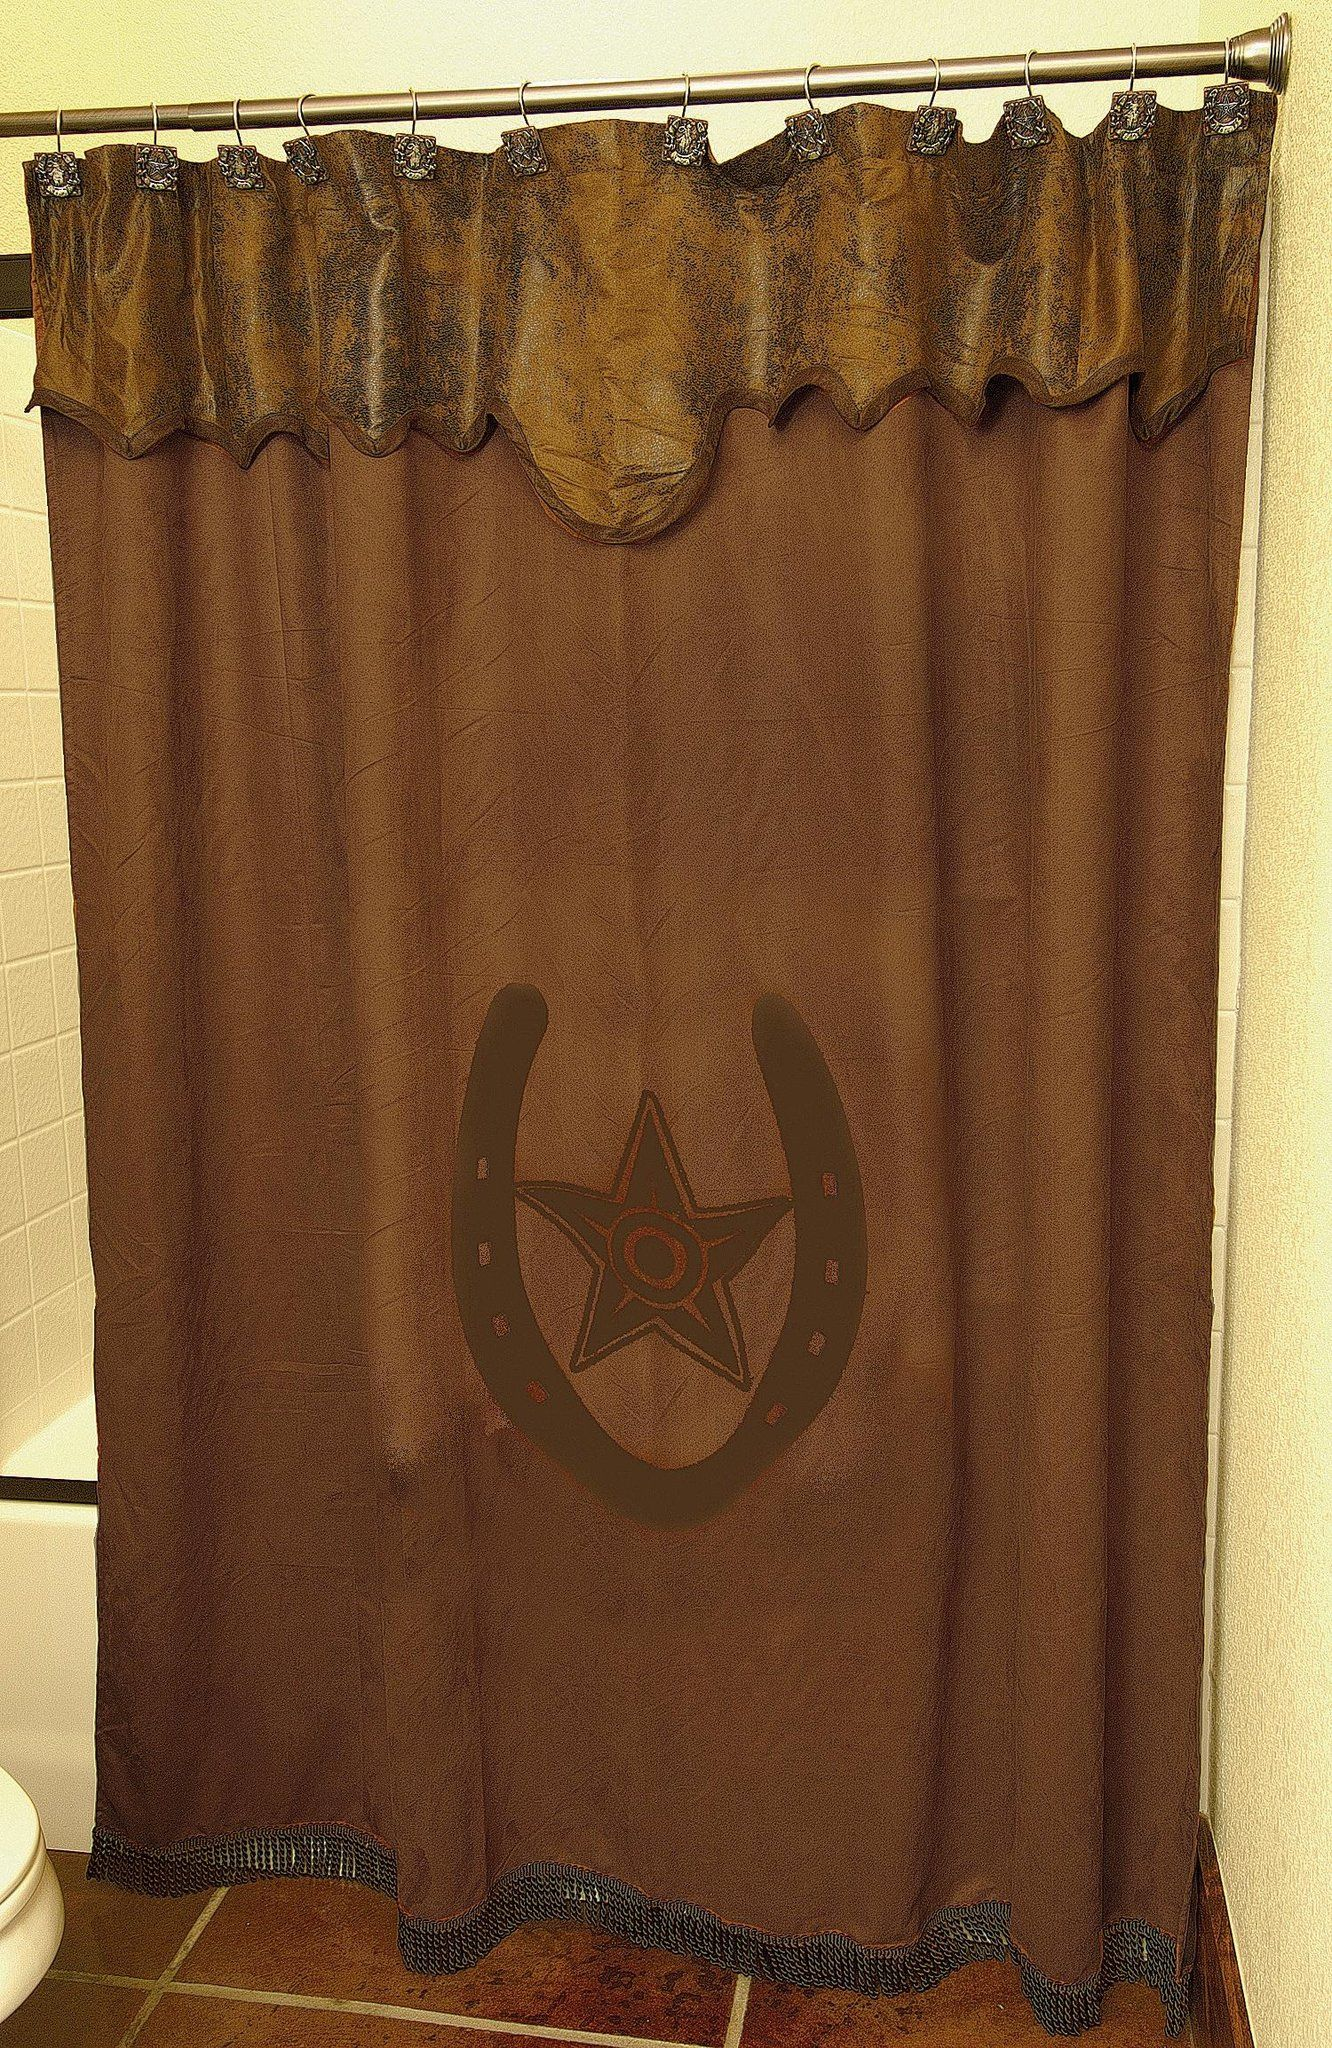 Shower Curtain Western Bathroom Decor Western Home Decor Primitive Bathrooms